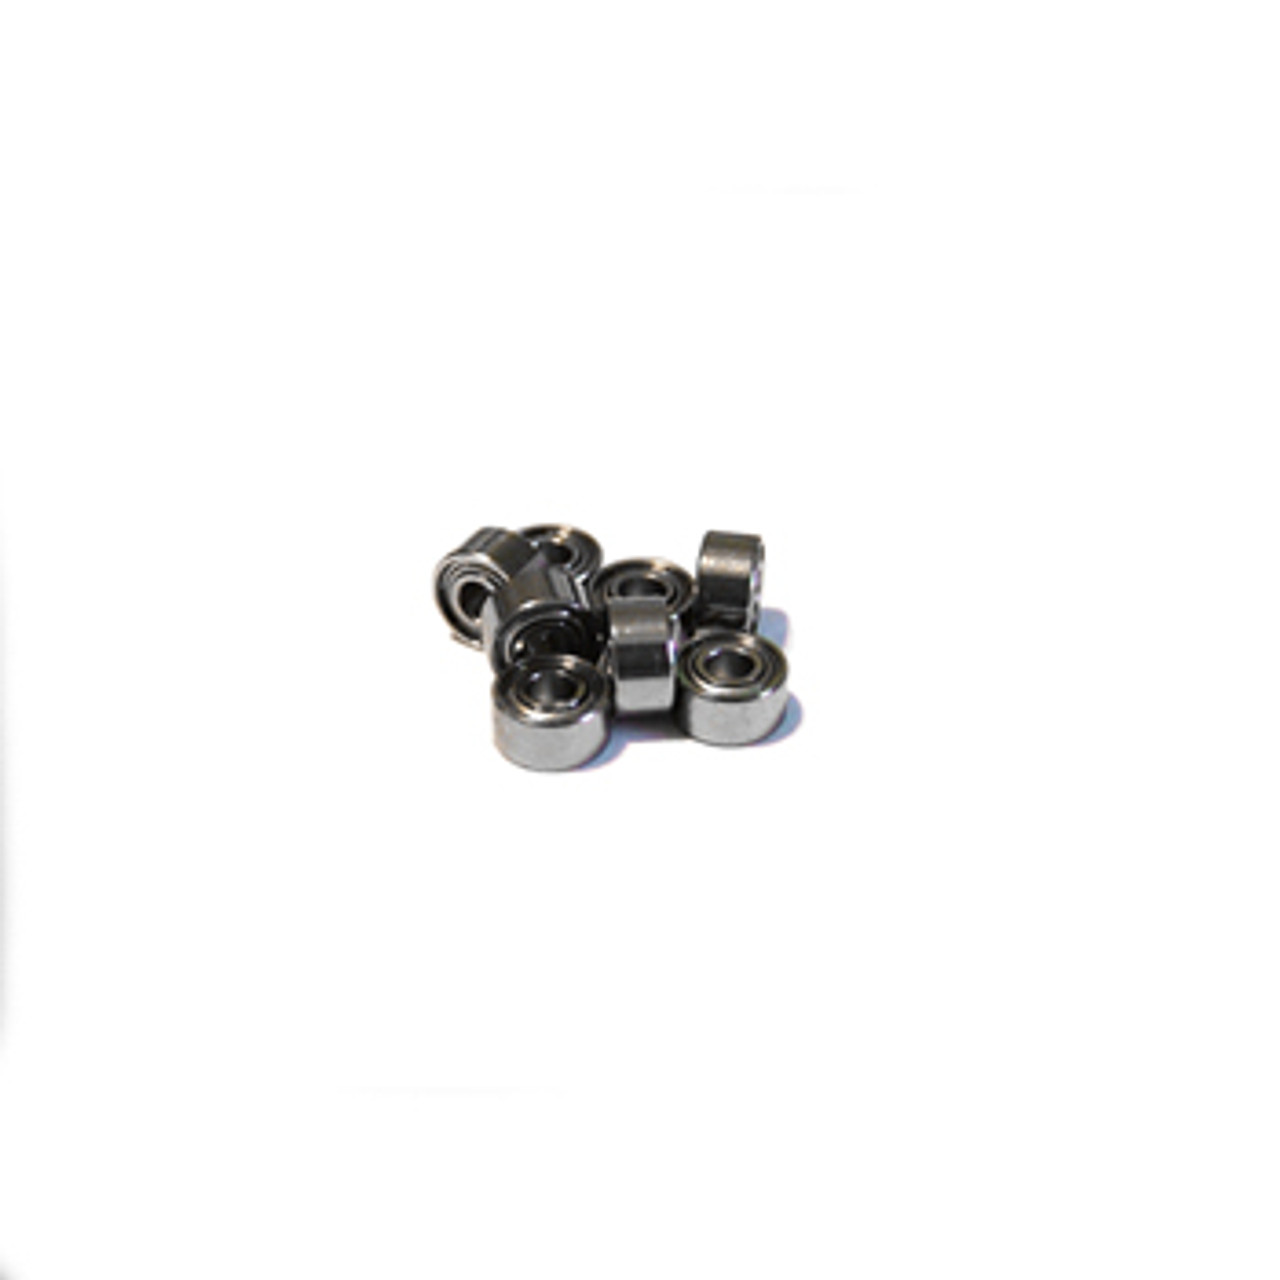 Bearings Metric Series 2x5x2.5 MM Metal Shielded (2 Pack) (MR52 ZZ)